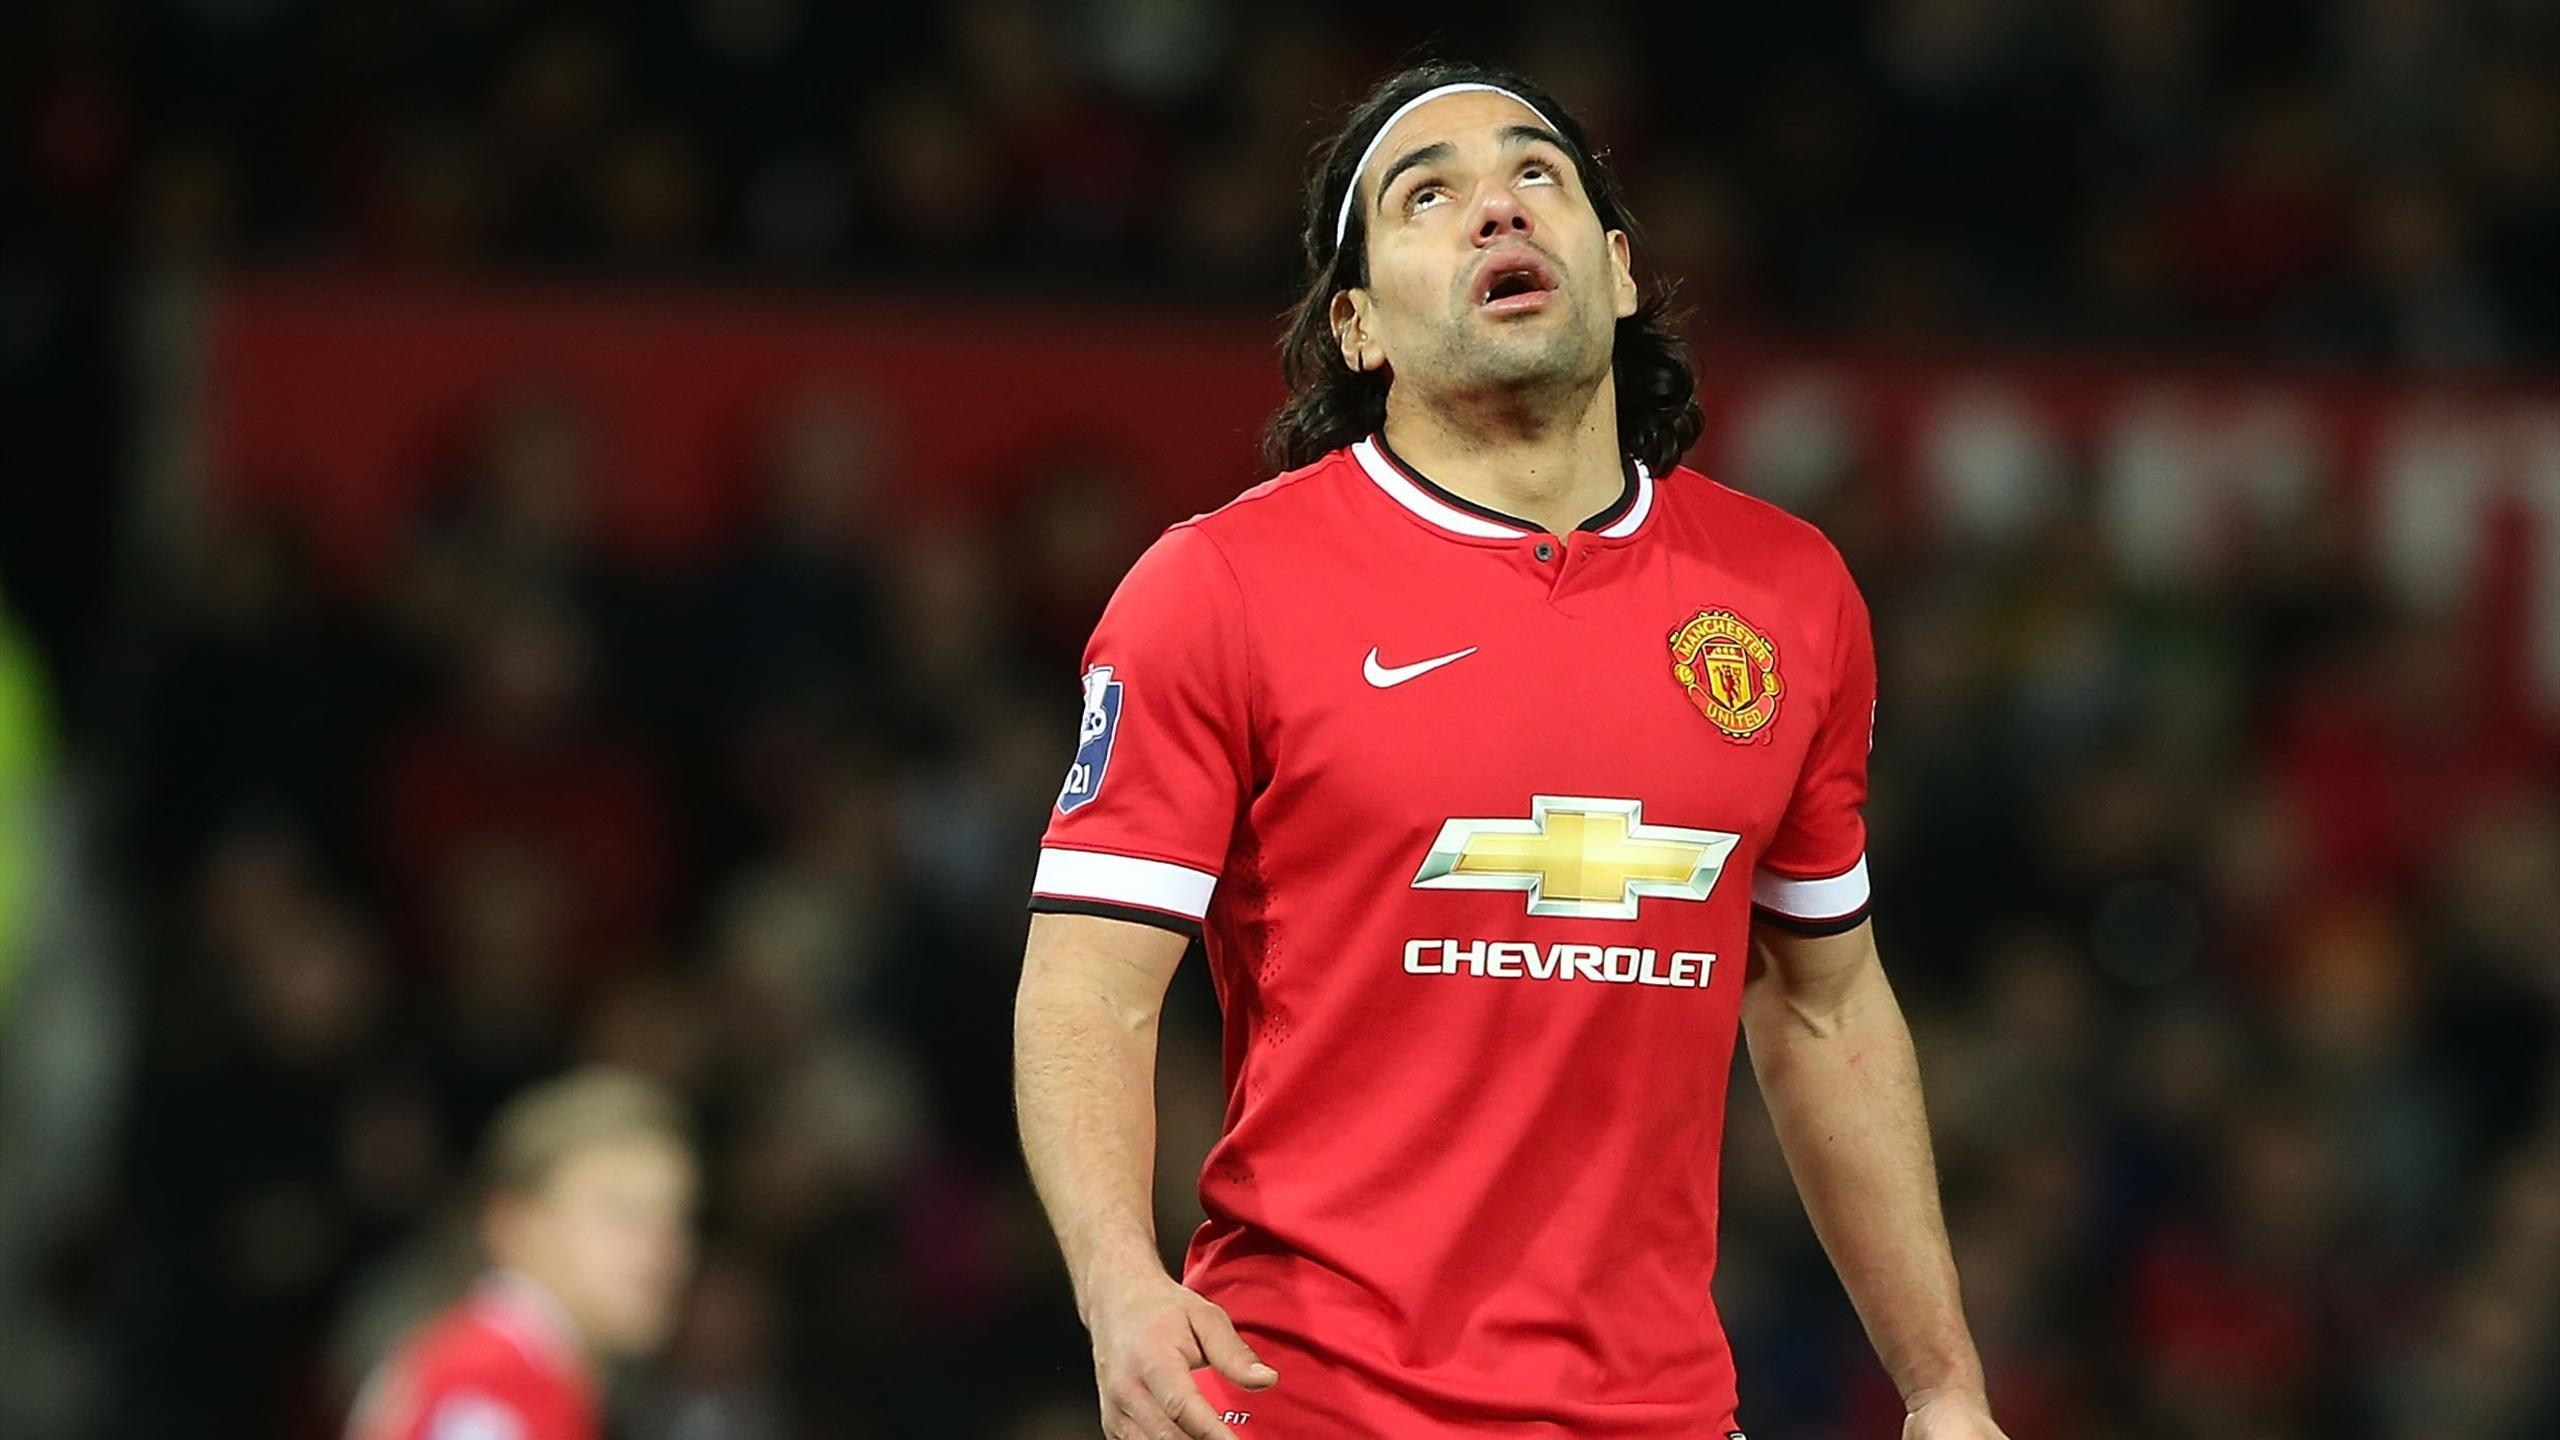 Will Falcao get his place back in the Manchester United team?